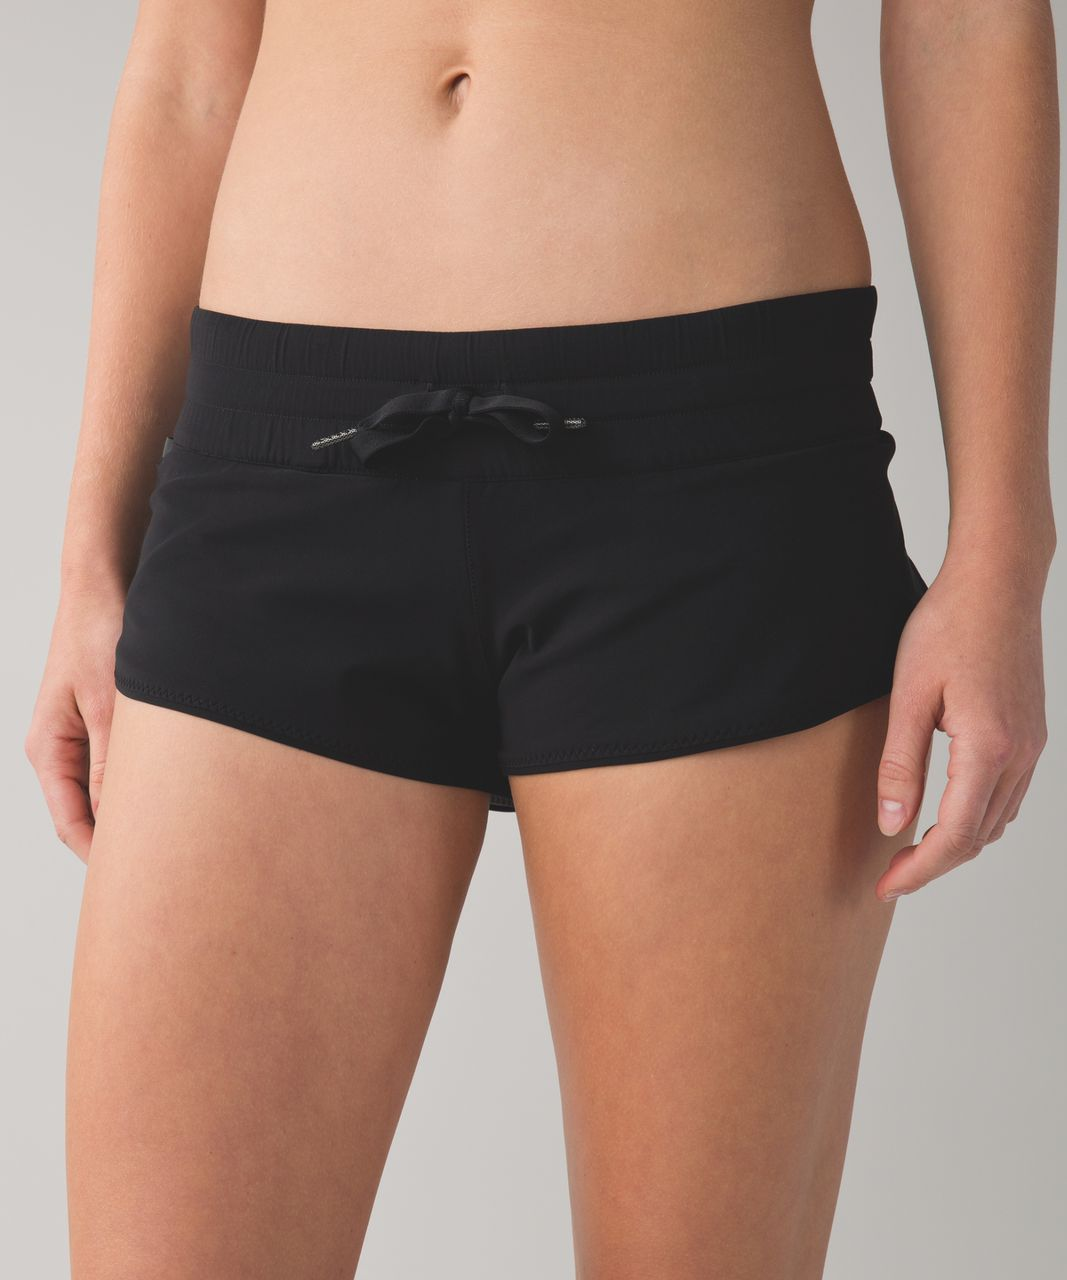 d4707e880c Lululemon Water: Surf Short - Black / Mini Prickly Pear Multi - lulu  fanatics